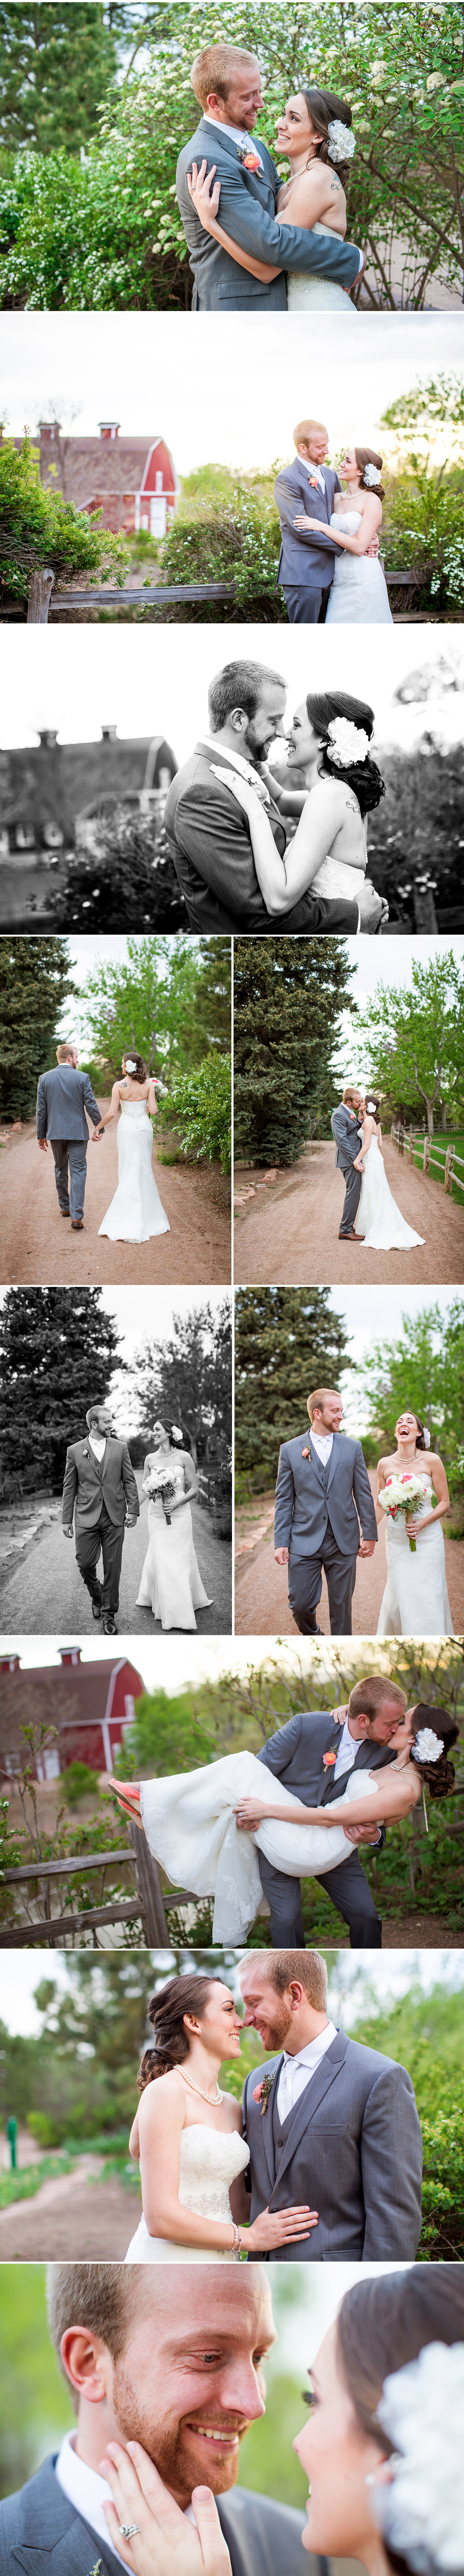 9_Colorado Wedding Photographer.jpg